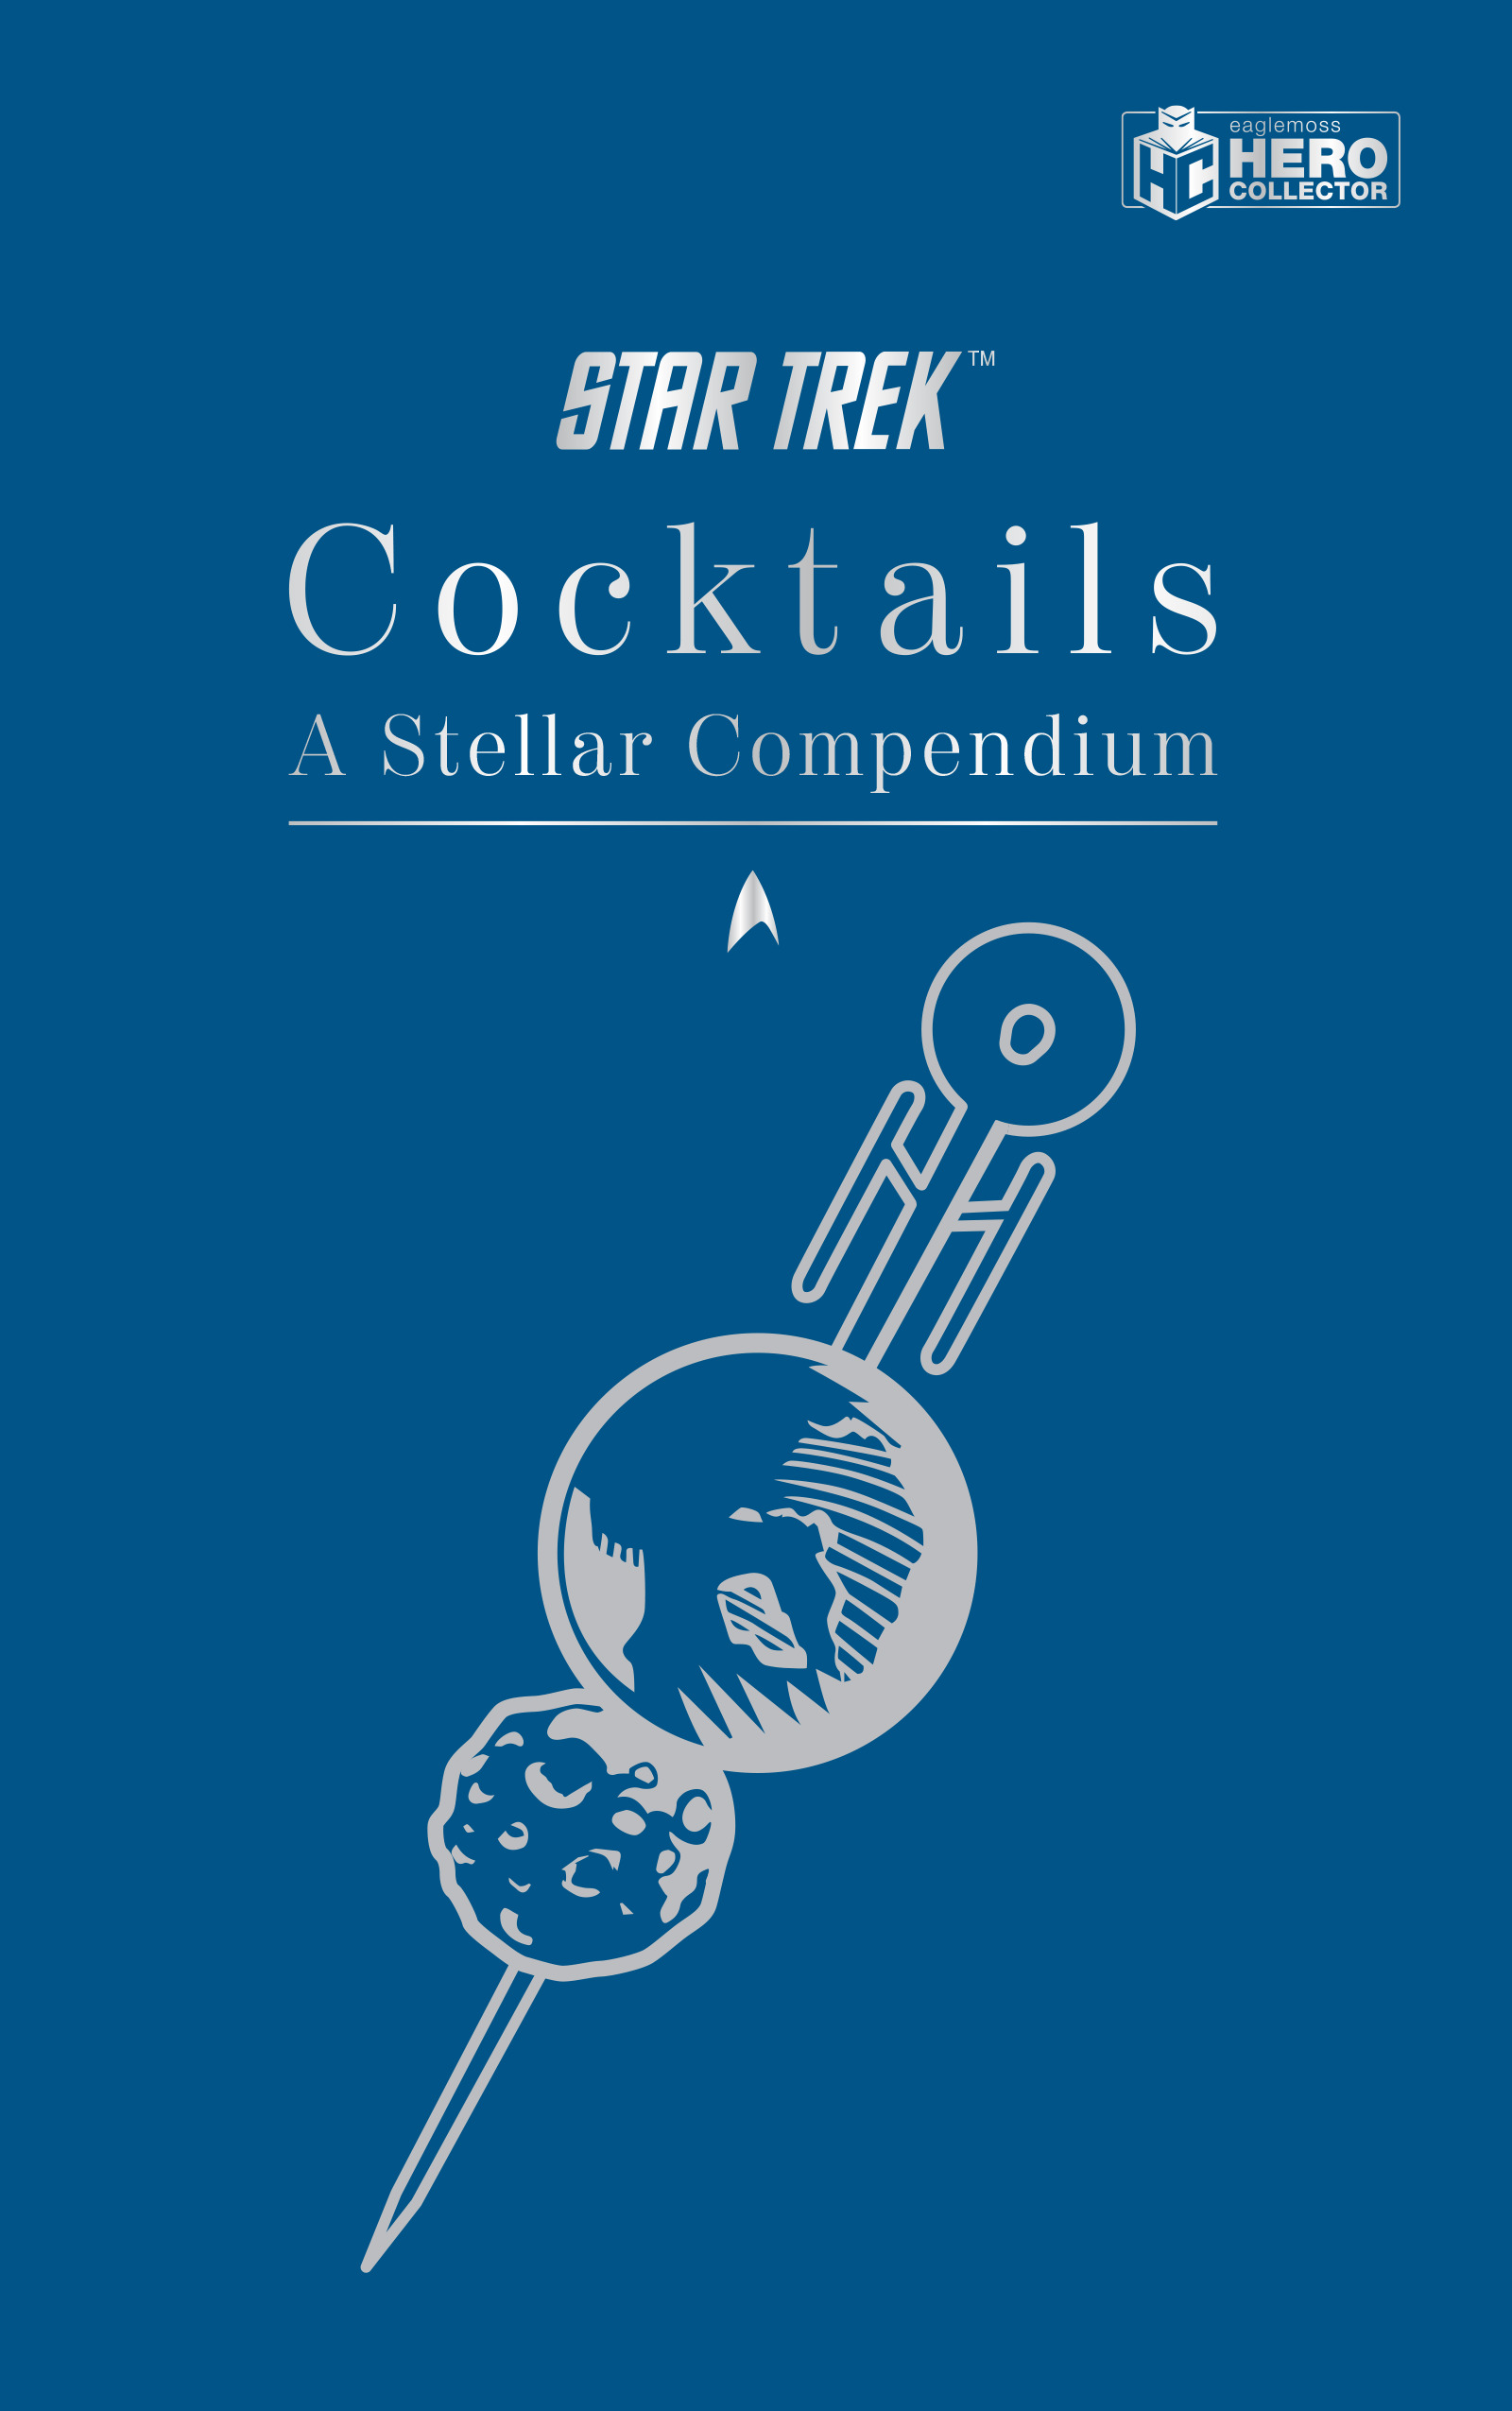 Star Trek Cocktails